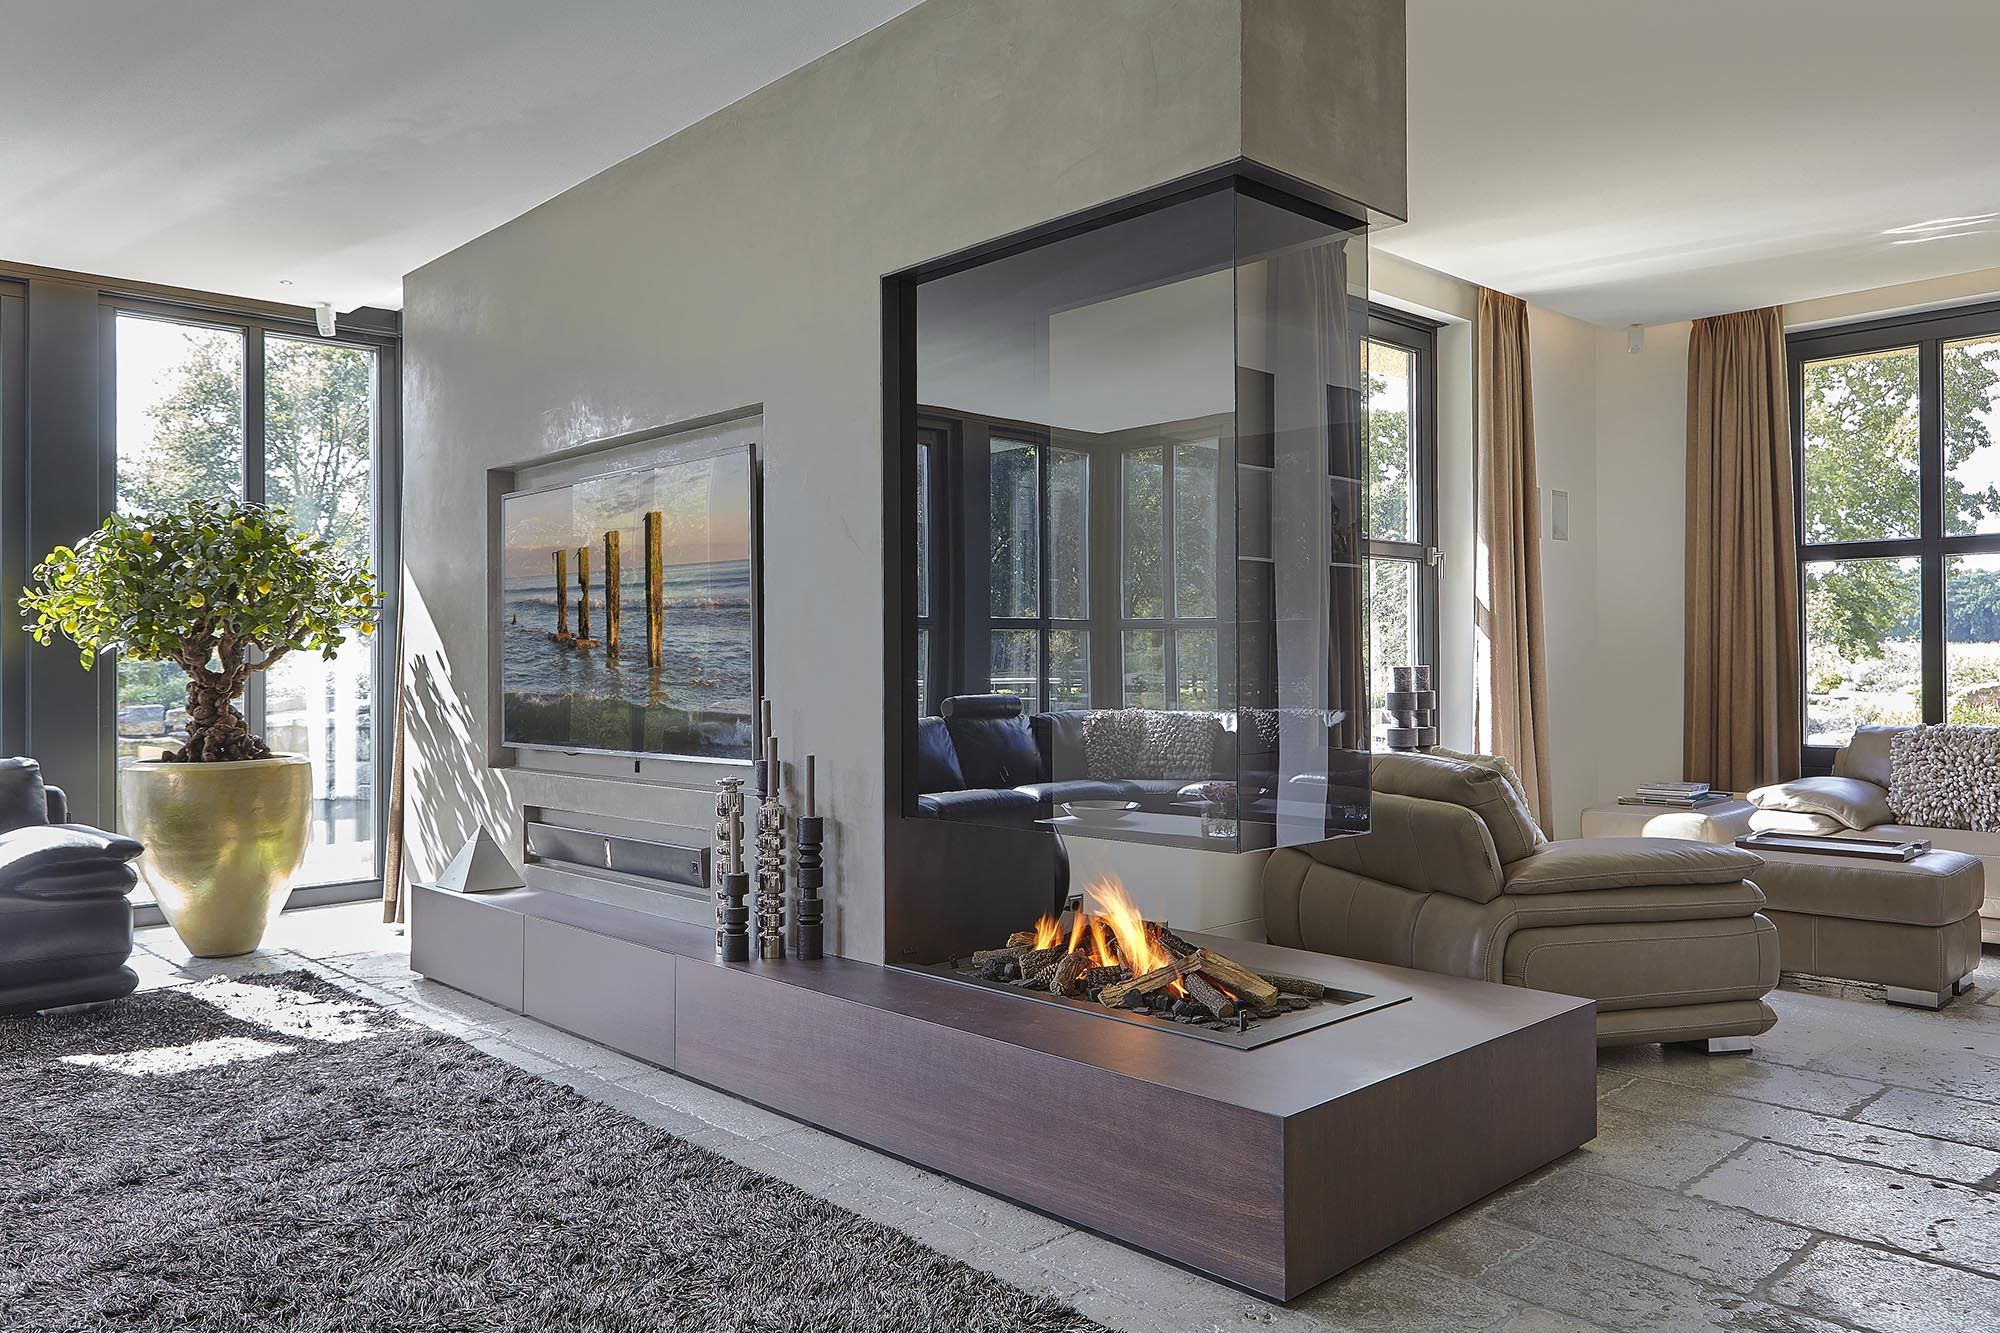 3-Sided Glass Hanging Fireplace | Contemporary fireplace, Side fireplace,  Fireplace design